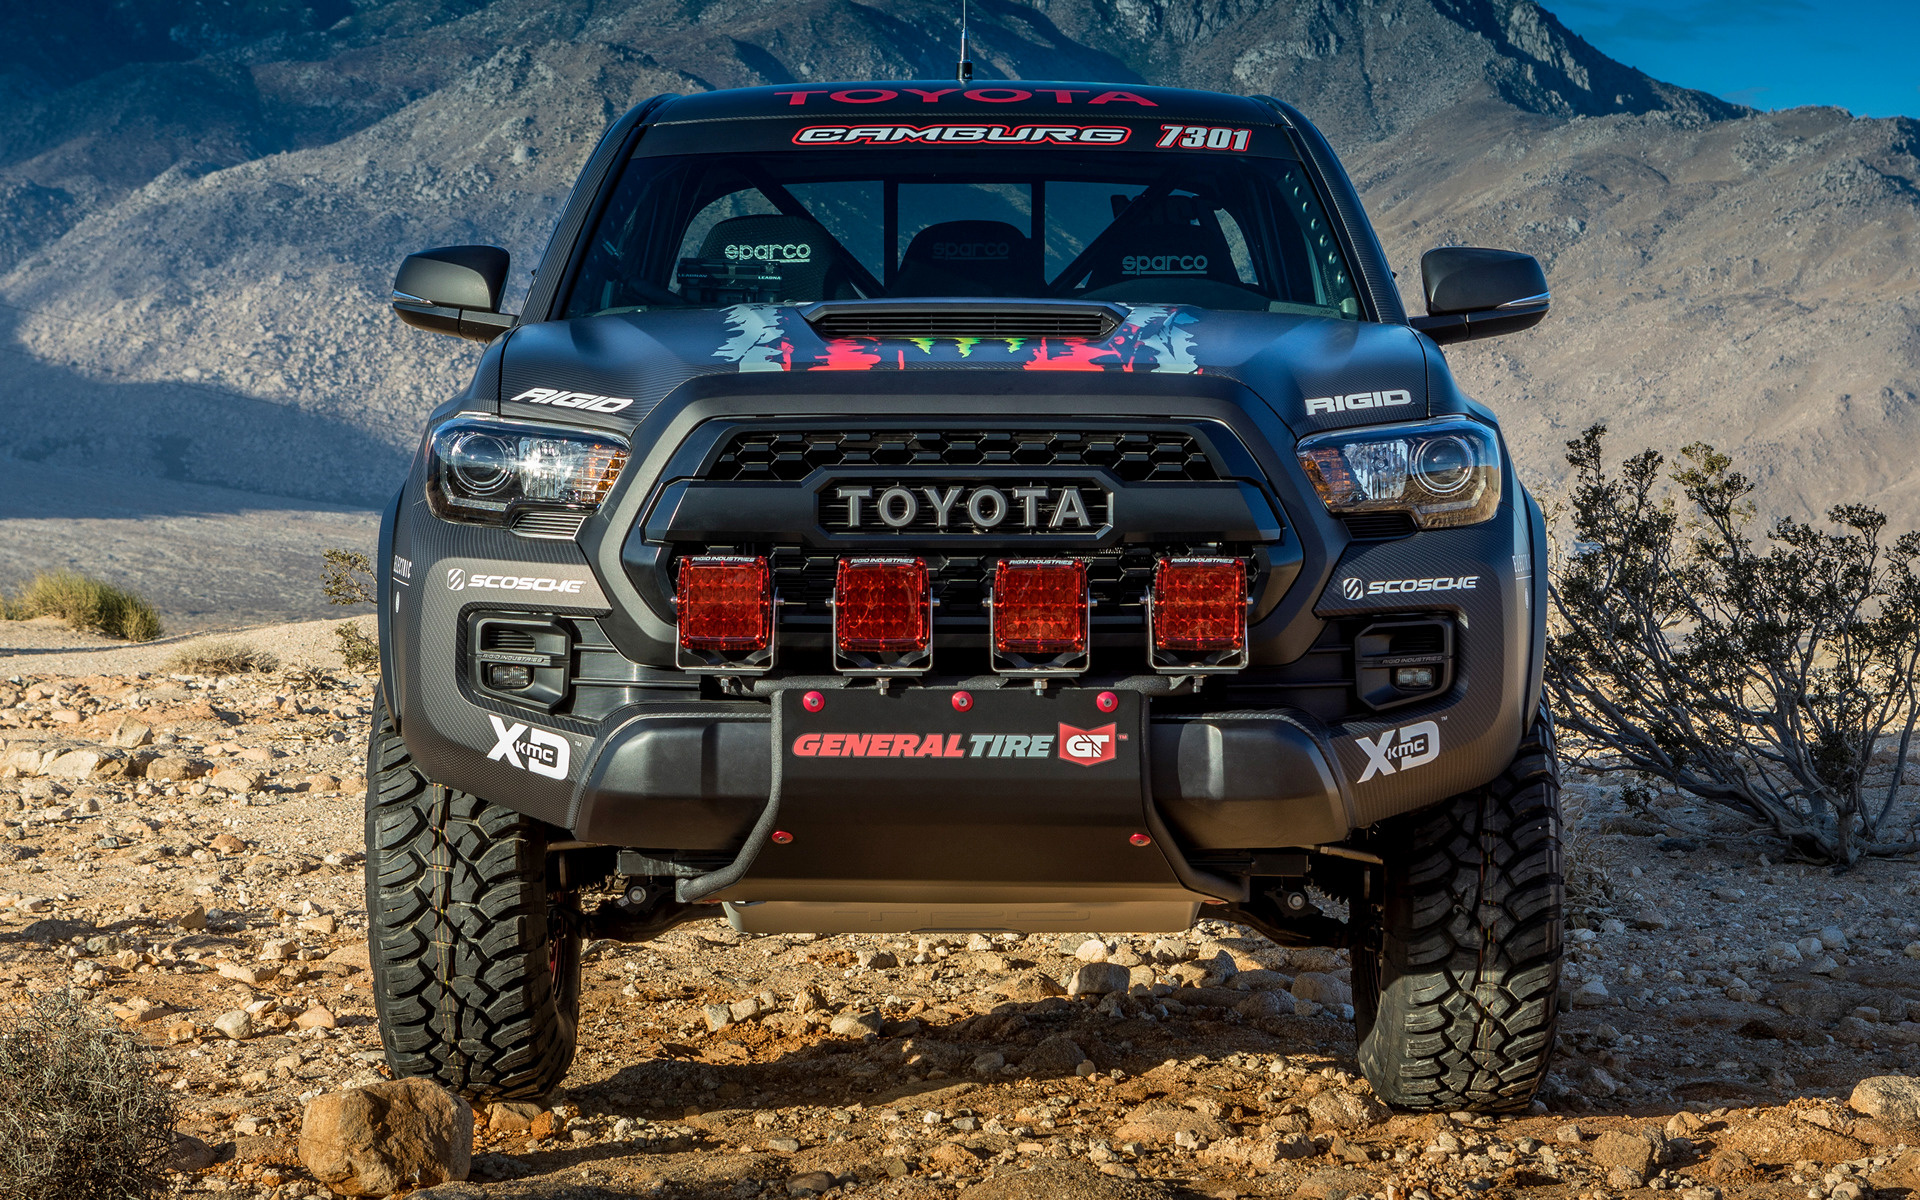 Toyota Tacoma Trd Pro Race Truck 2016 Wallpapers And Hd